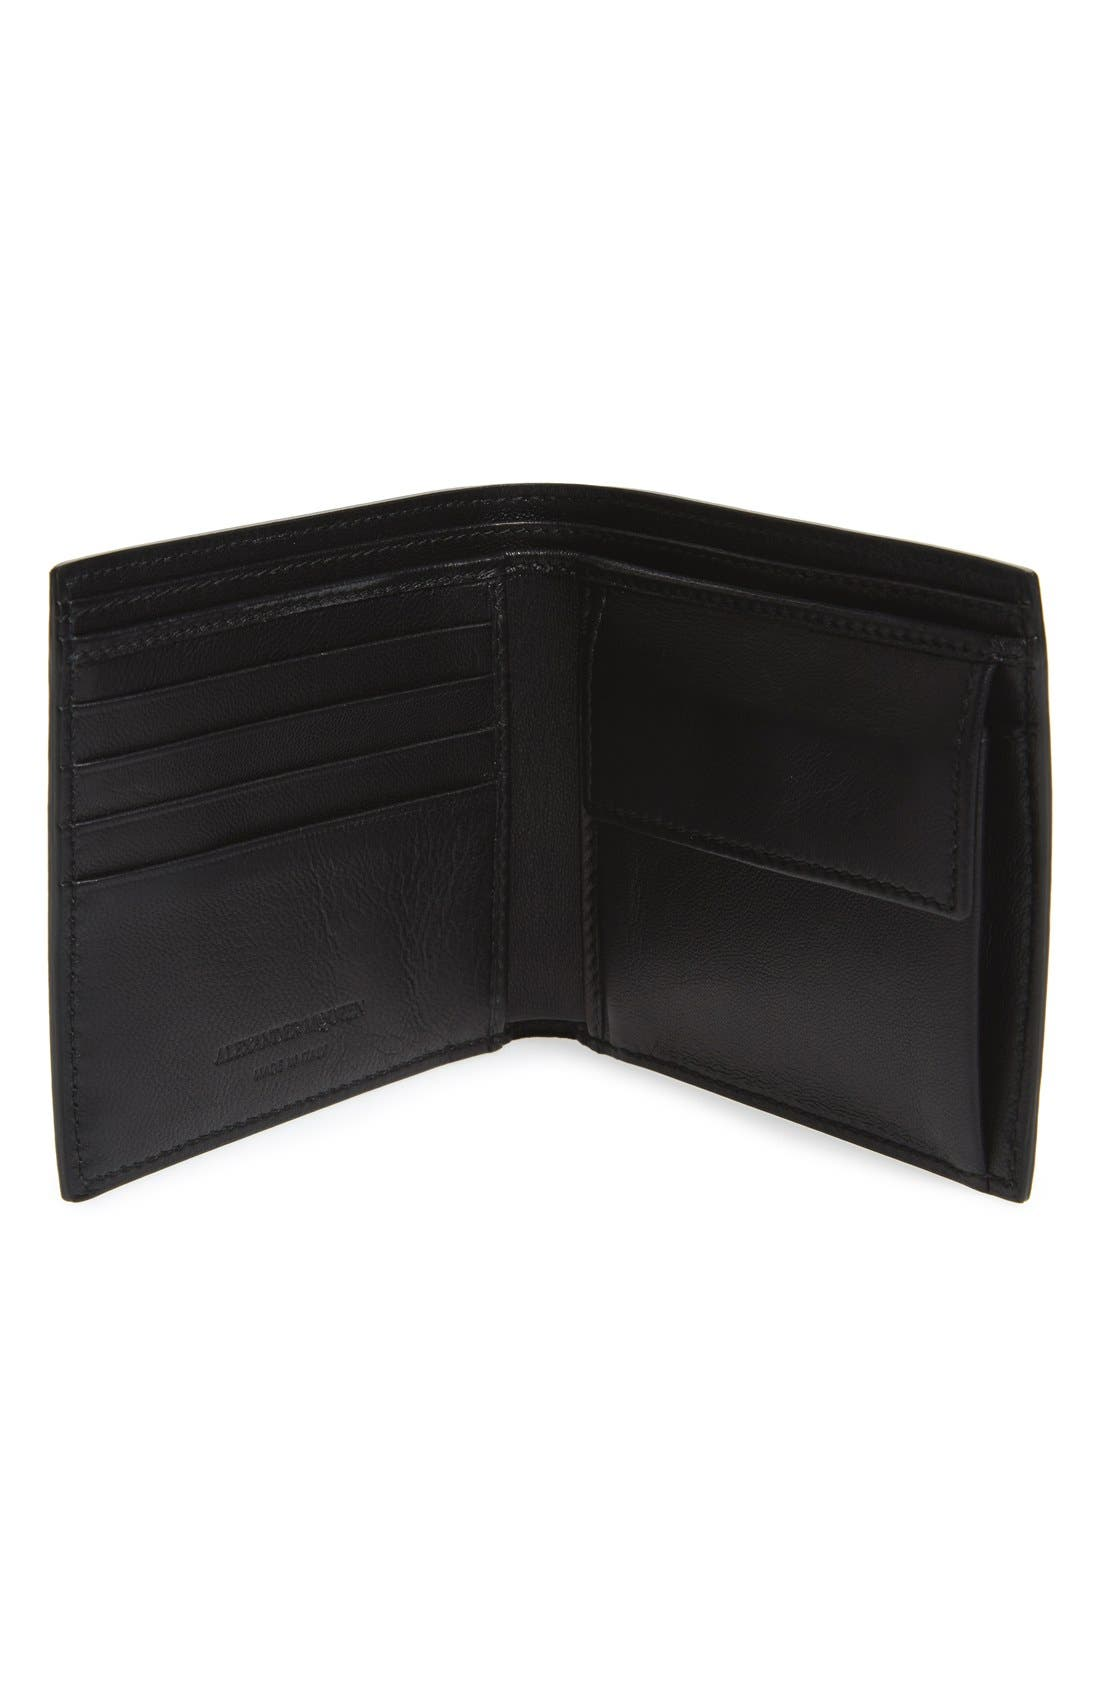 Ribcage Leather Wallet,                             Alternate thumbnail 2, color,                             001